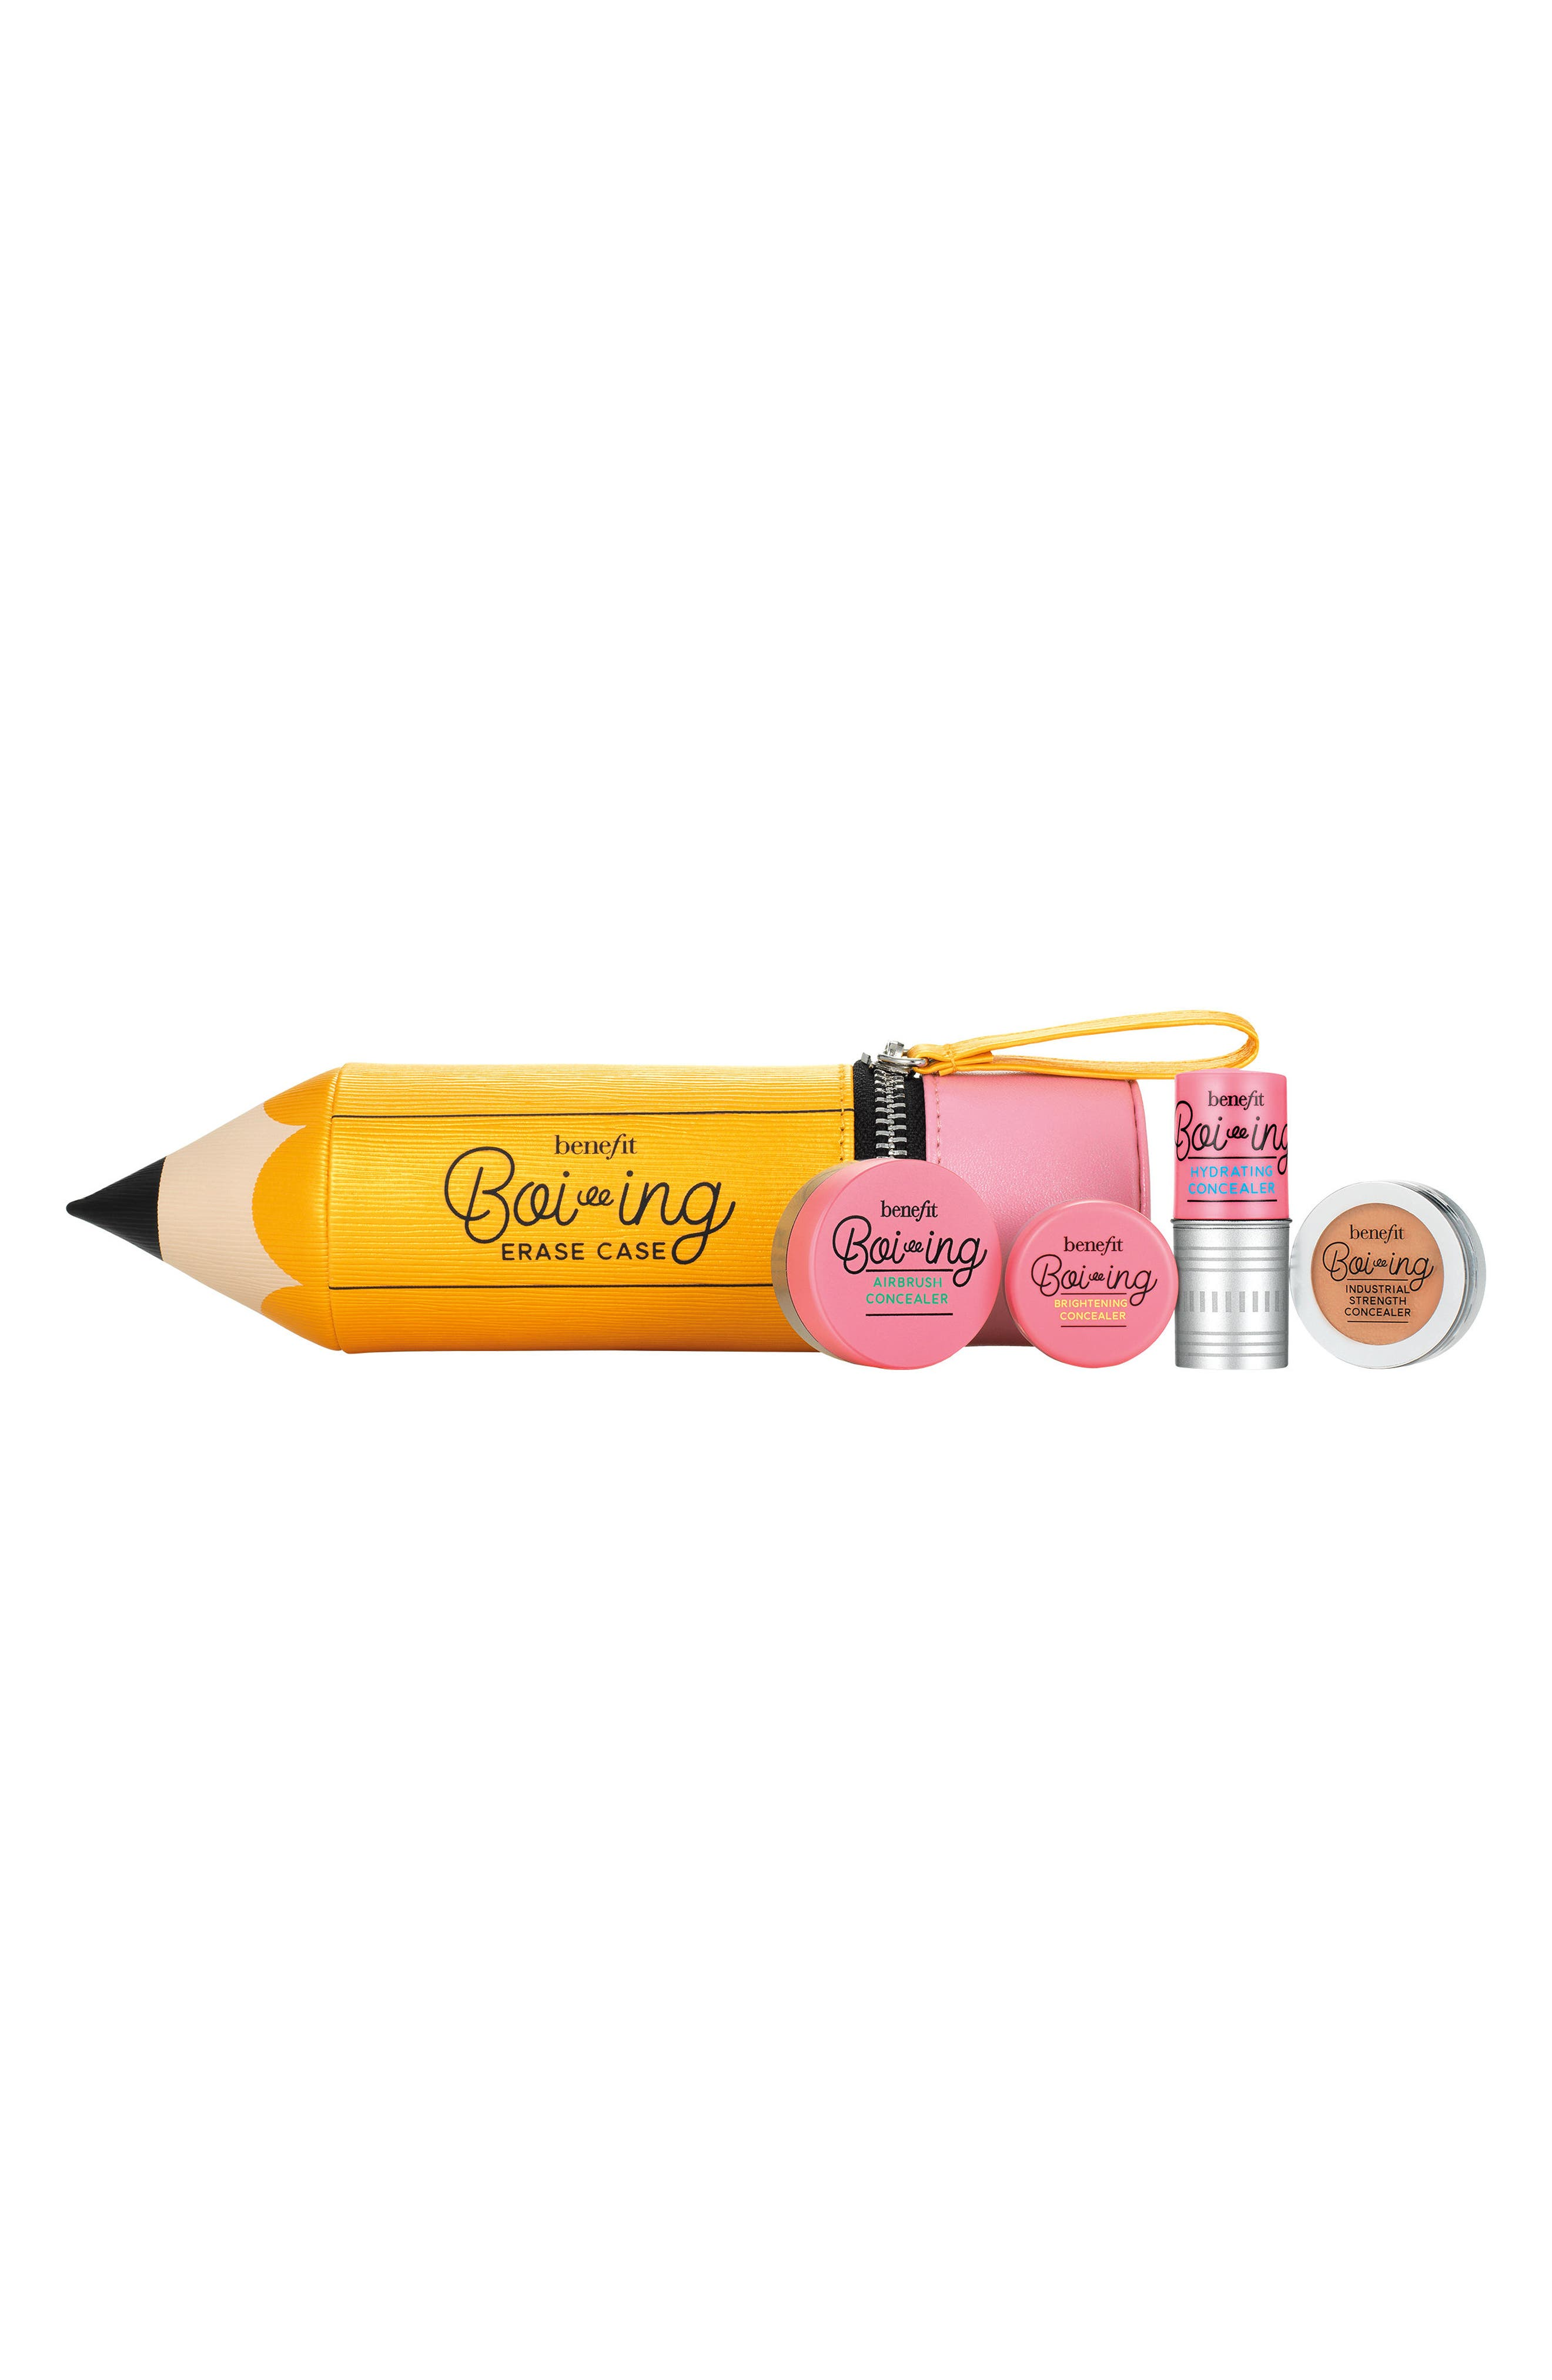 Benefit Erase Case Boi-ing Concealer Kit